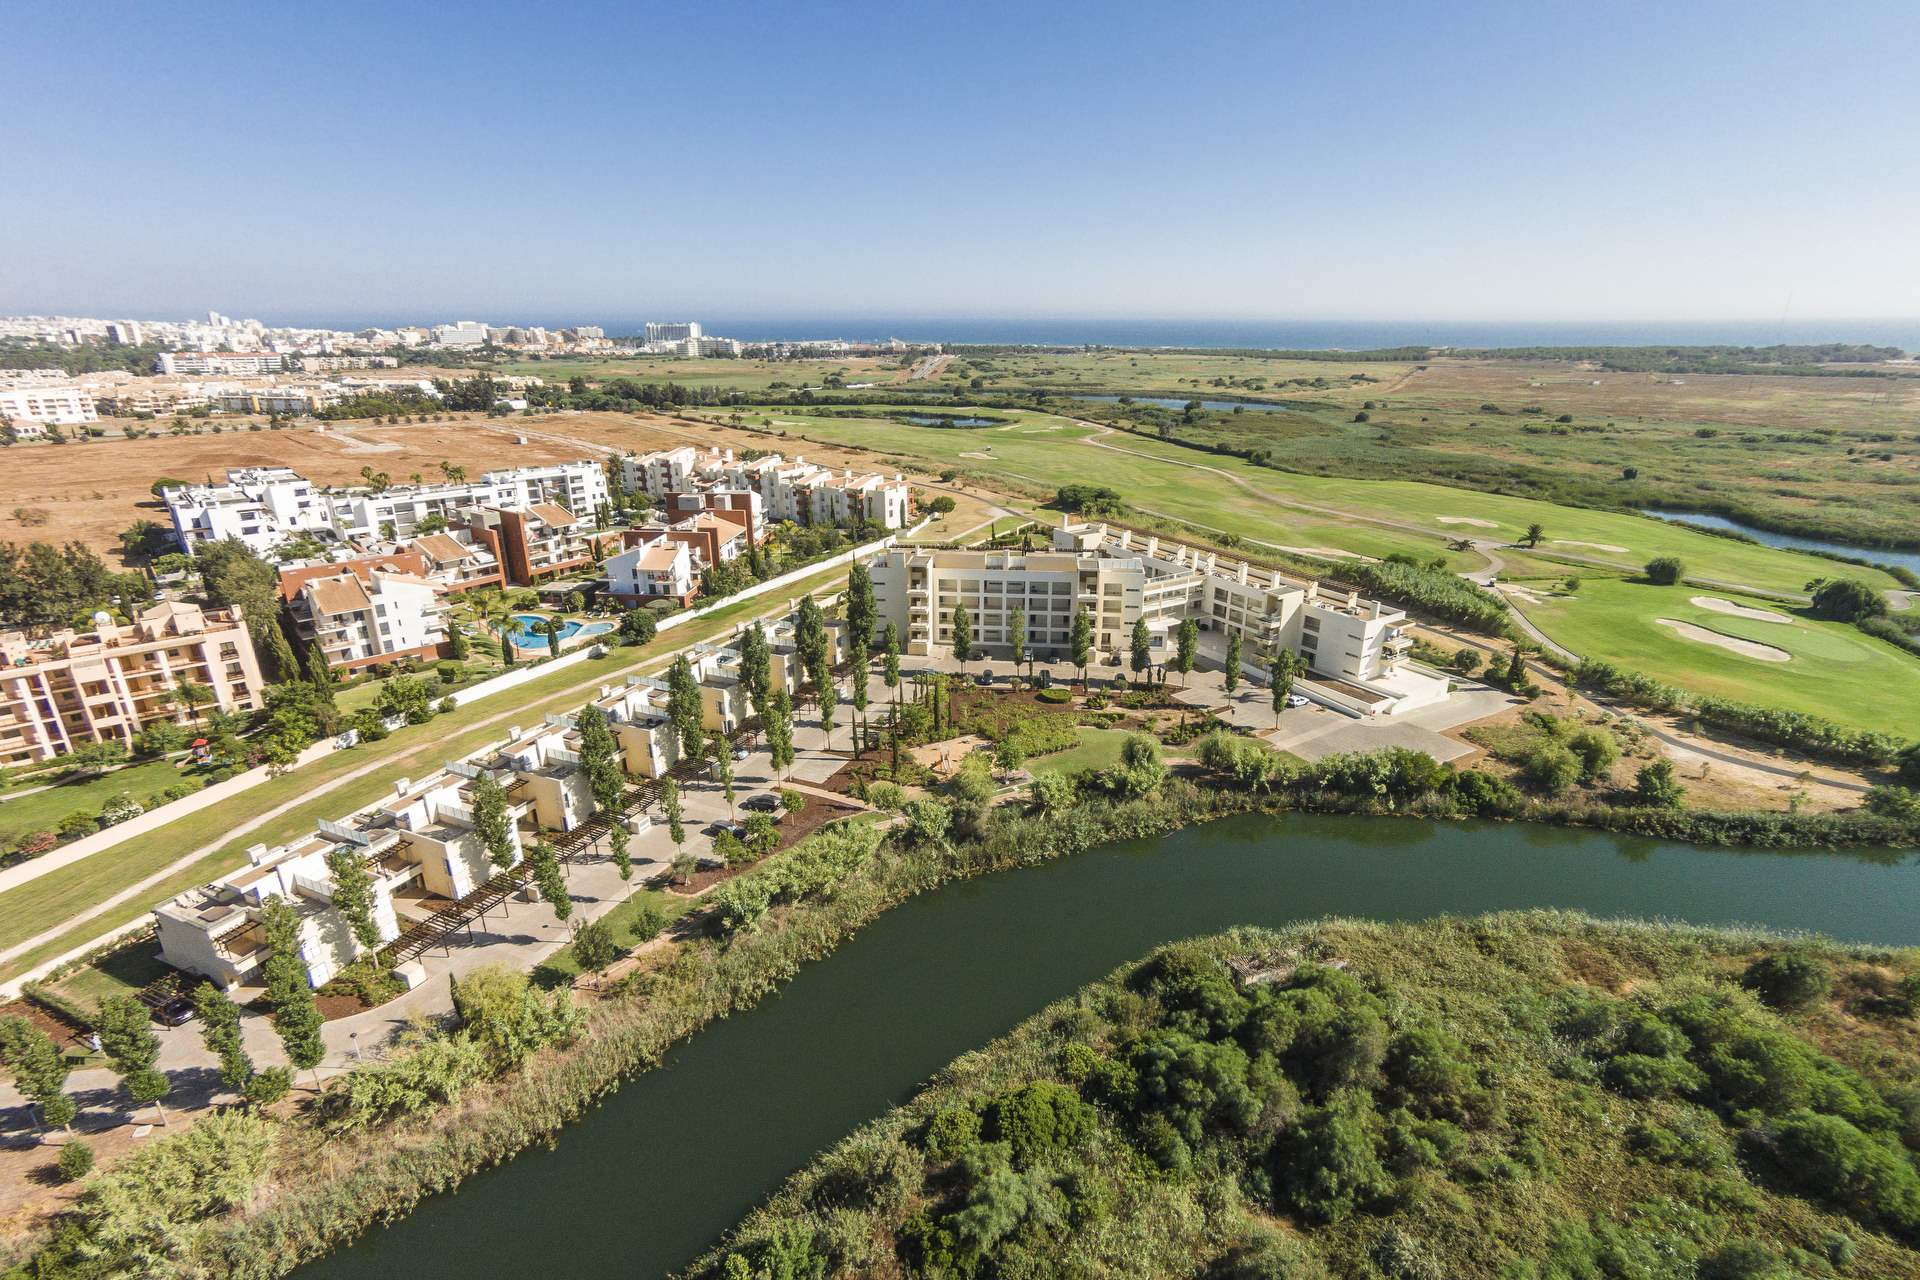 Laguna Resort, Two Bedroom Apartment, 2 bedroom resort in Vilamoura Area, Algarve Photo #1